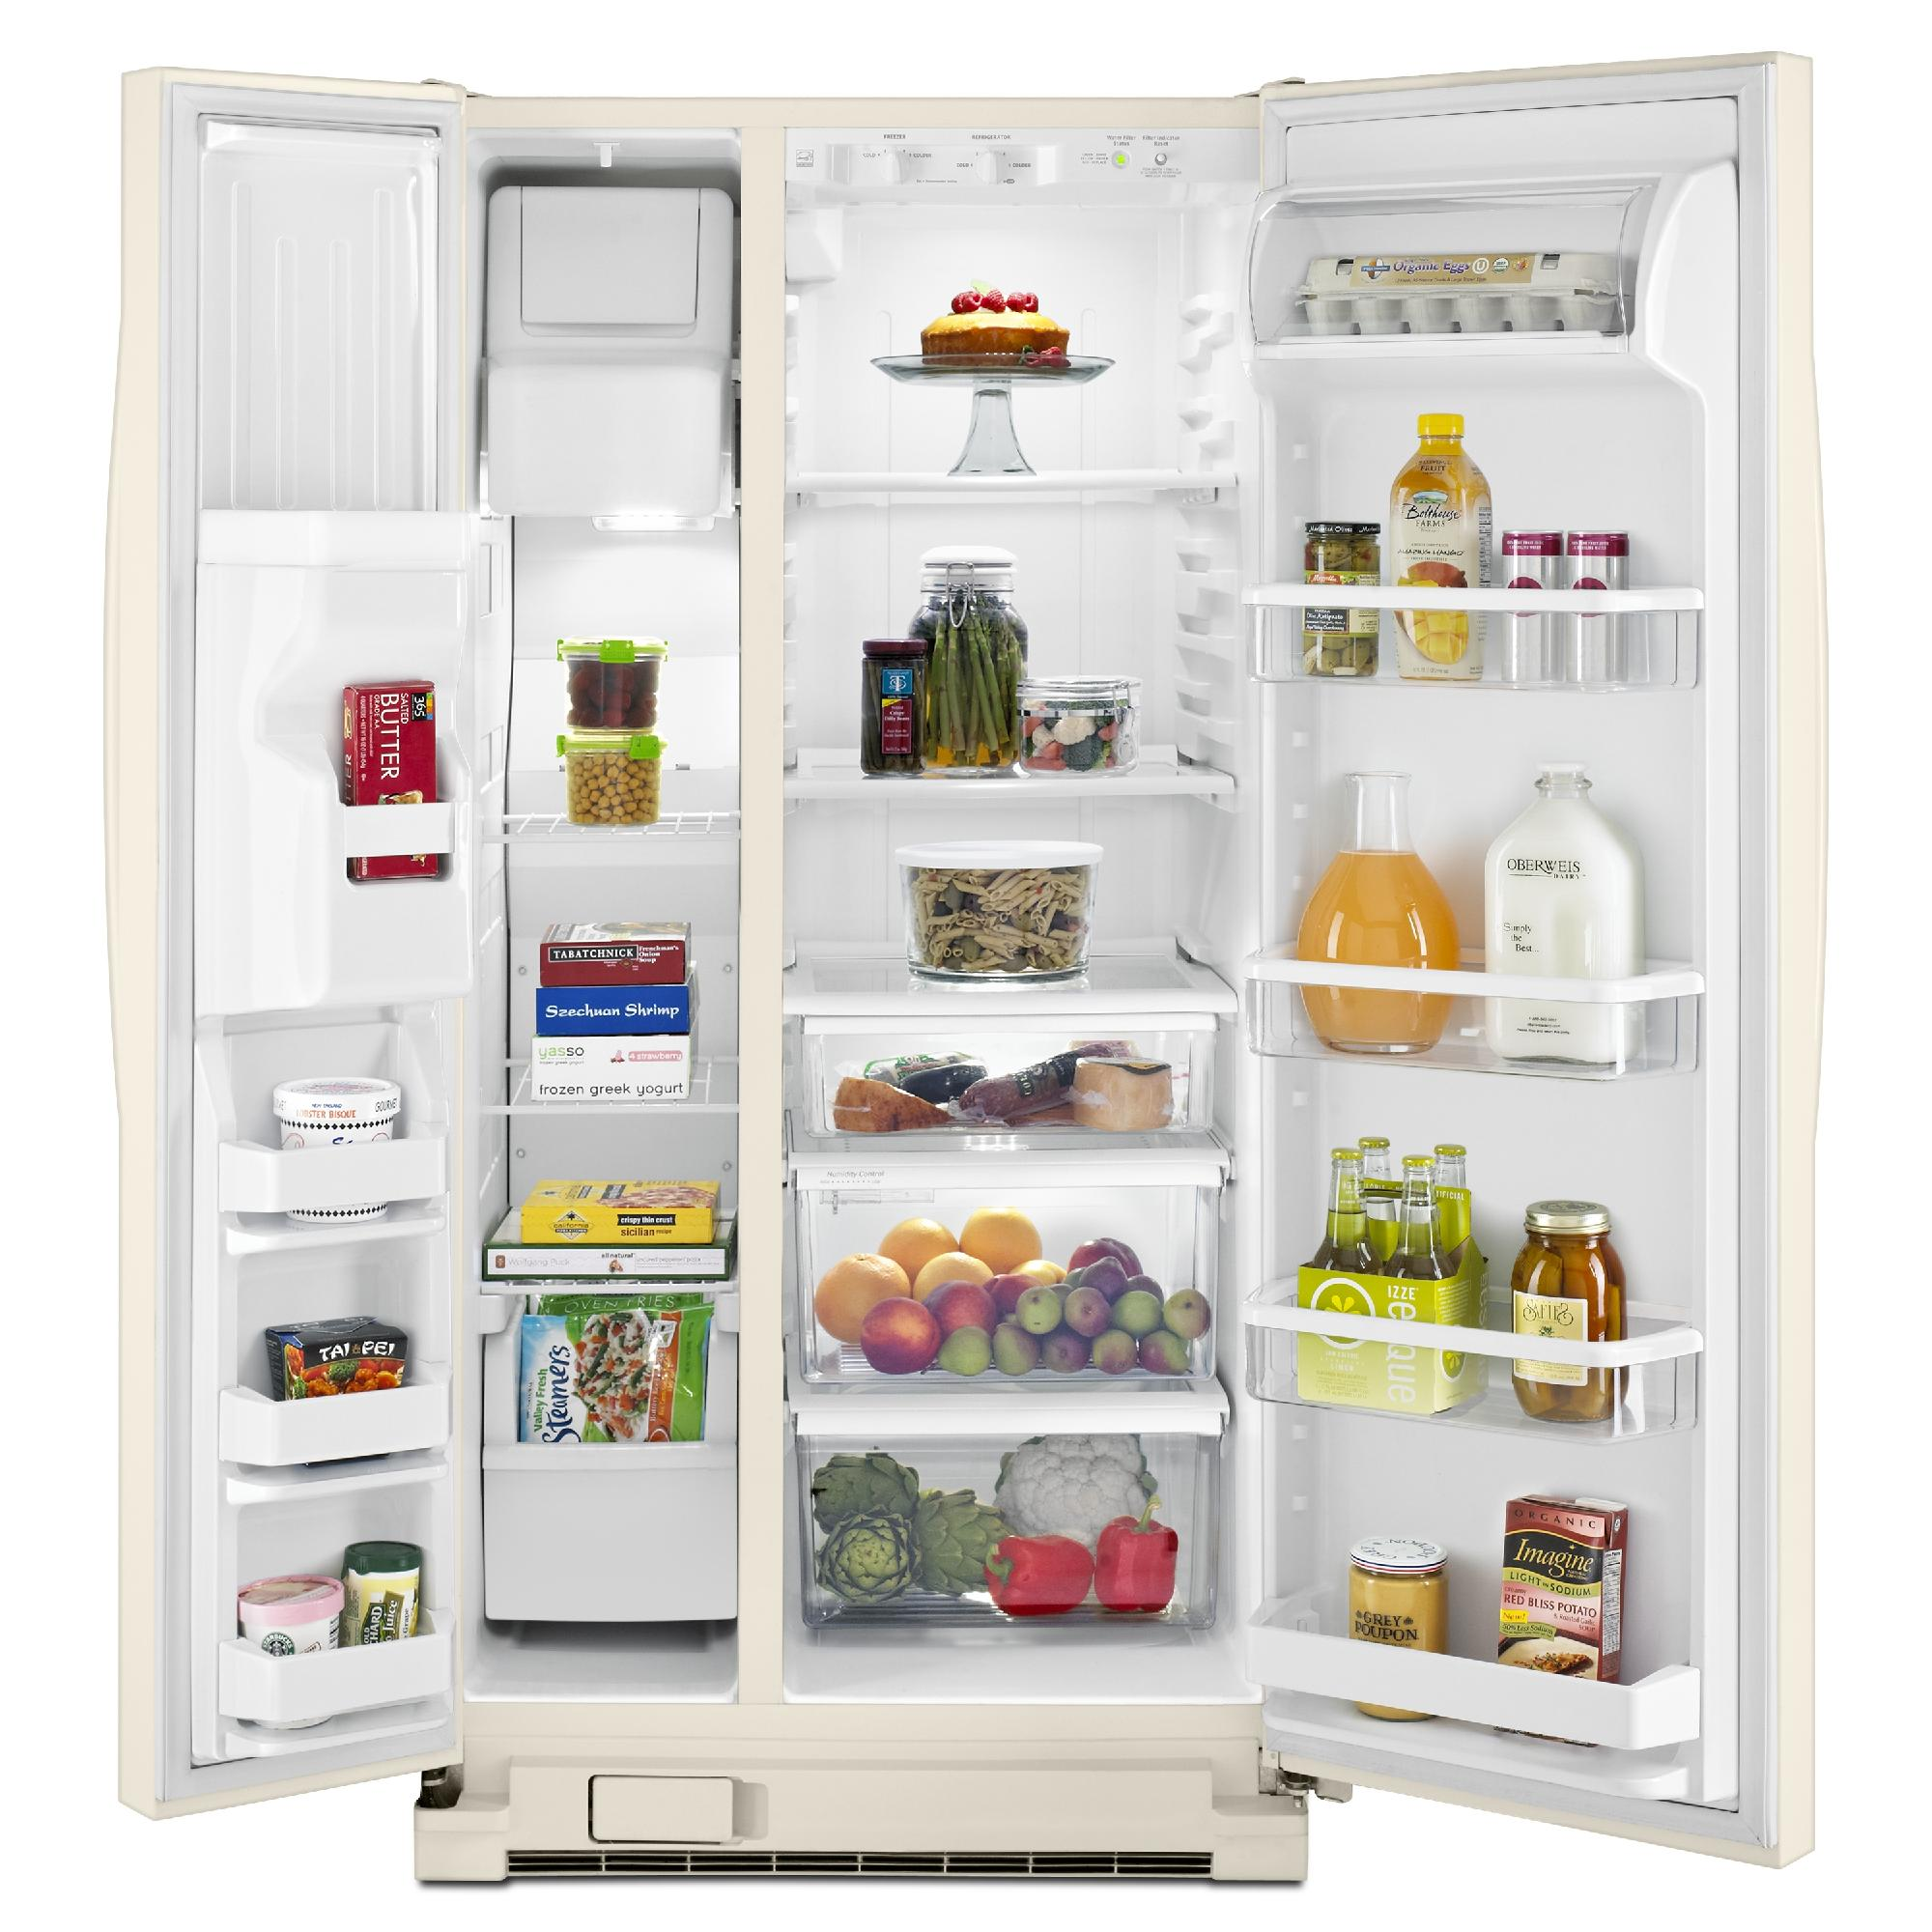 Whirlpool WRS322FDAT 21.0 cu. ft. Side-by-Side Refrigerator w/ Accu-Chill™ - Bisquit